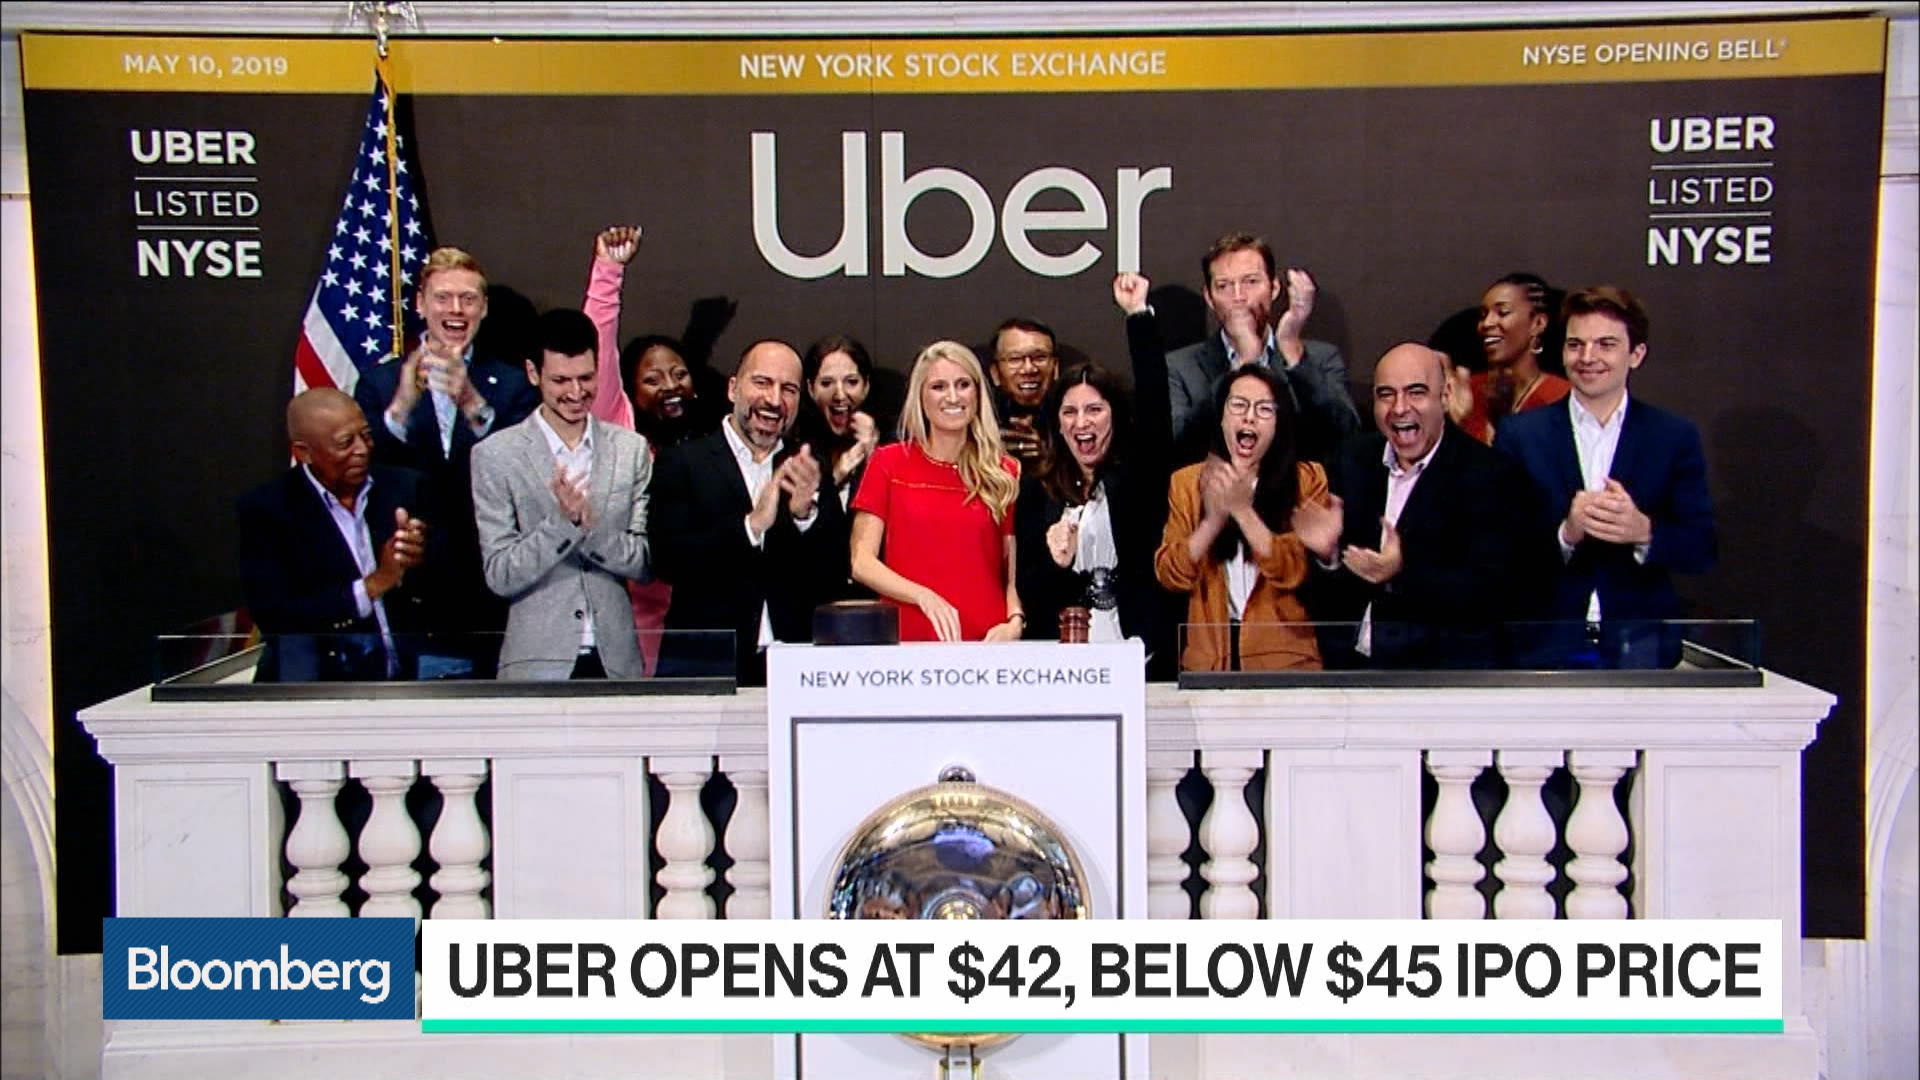 Morgan Stanley Got Clients Into Uber. Then the IPO Stumbled - Bloomberg